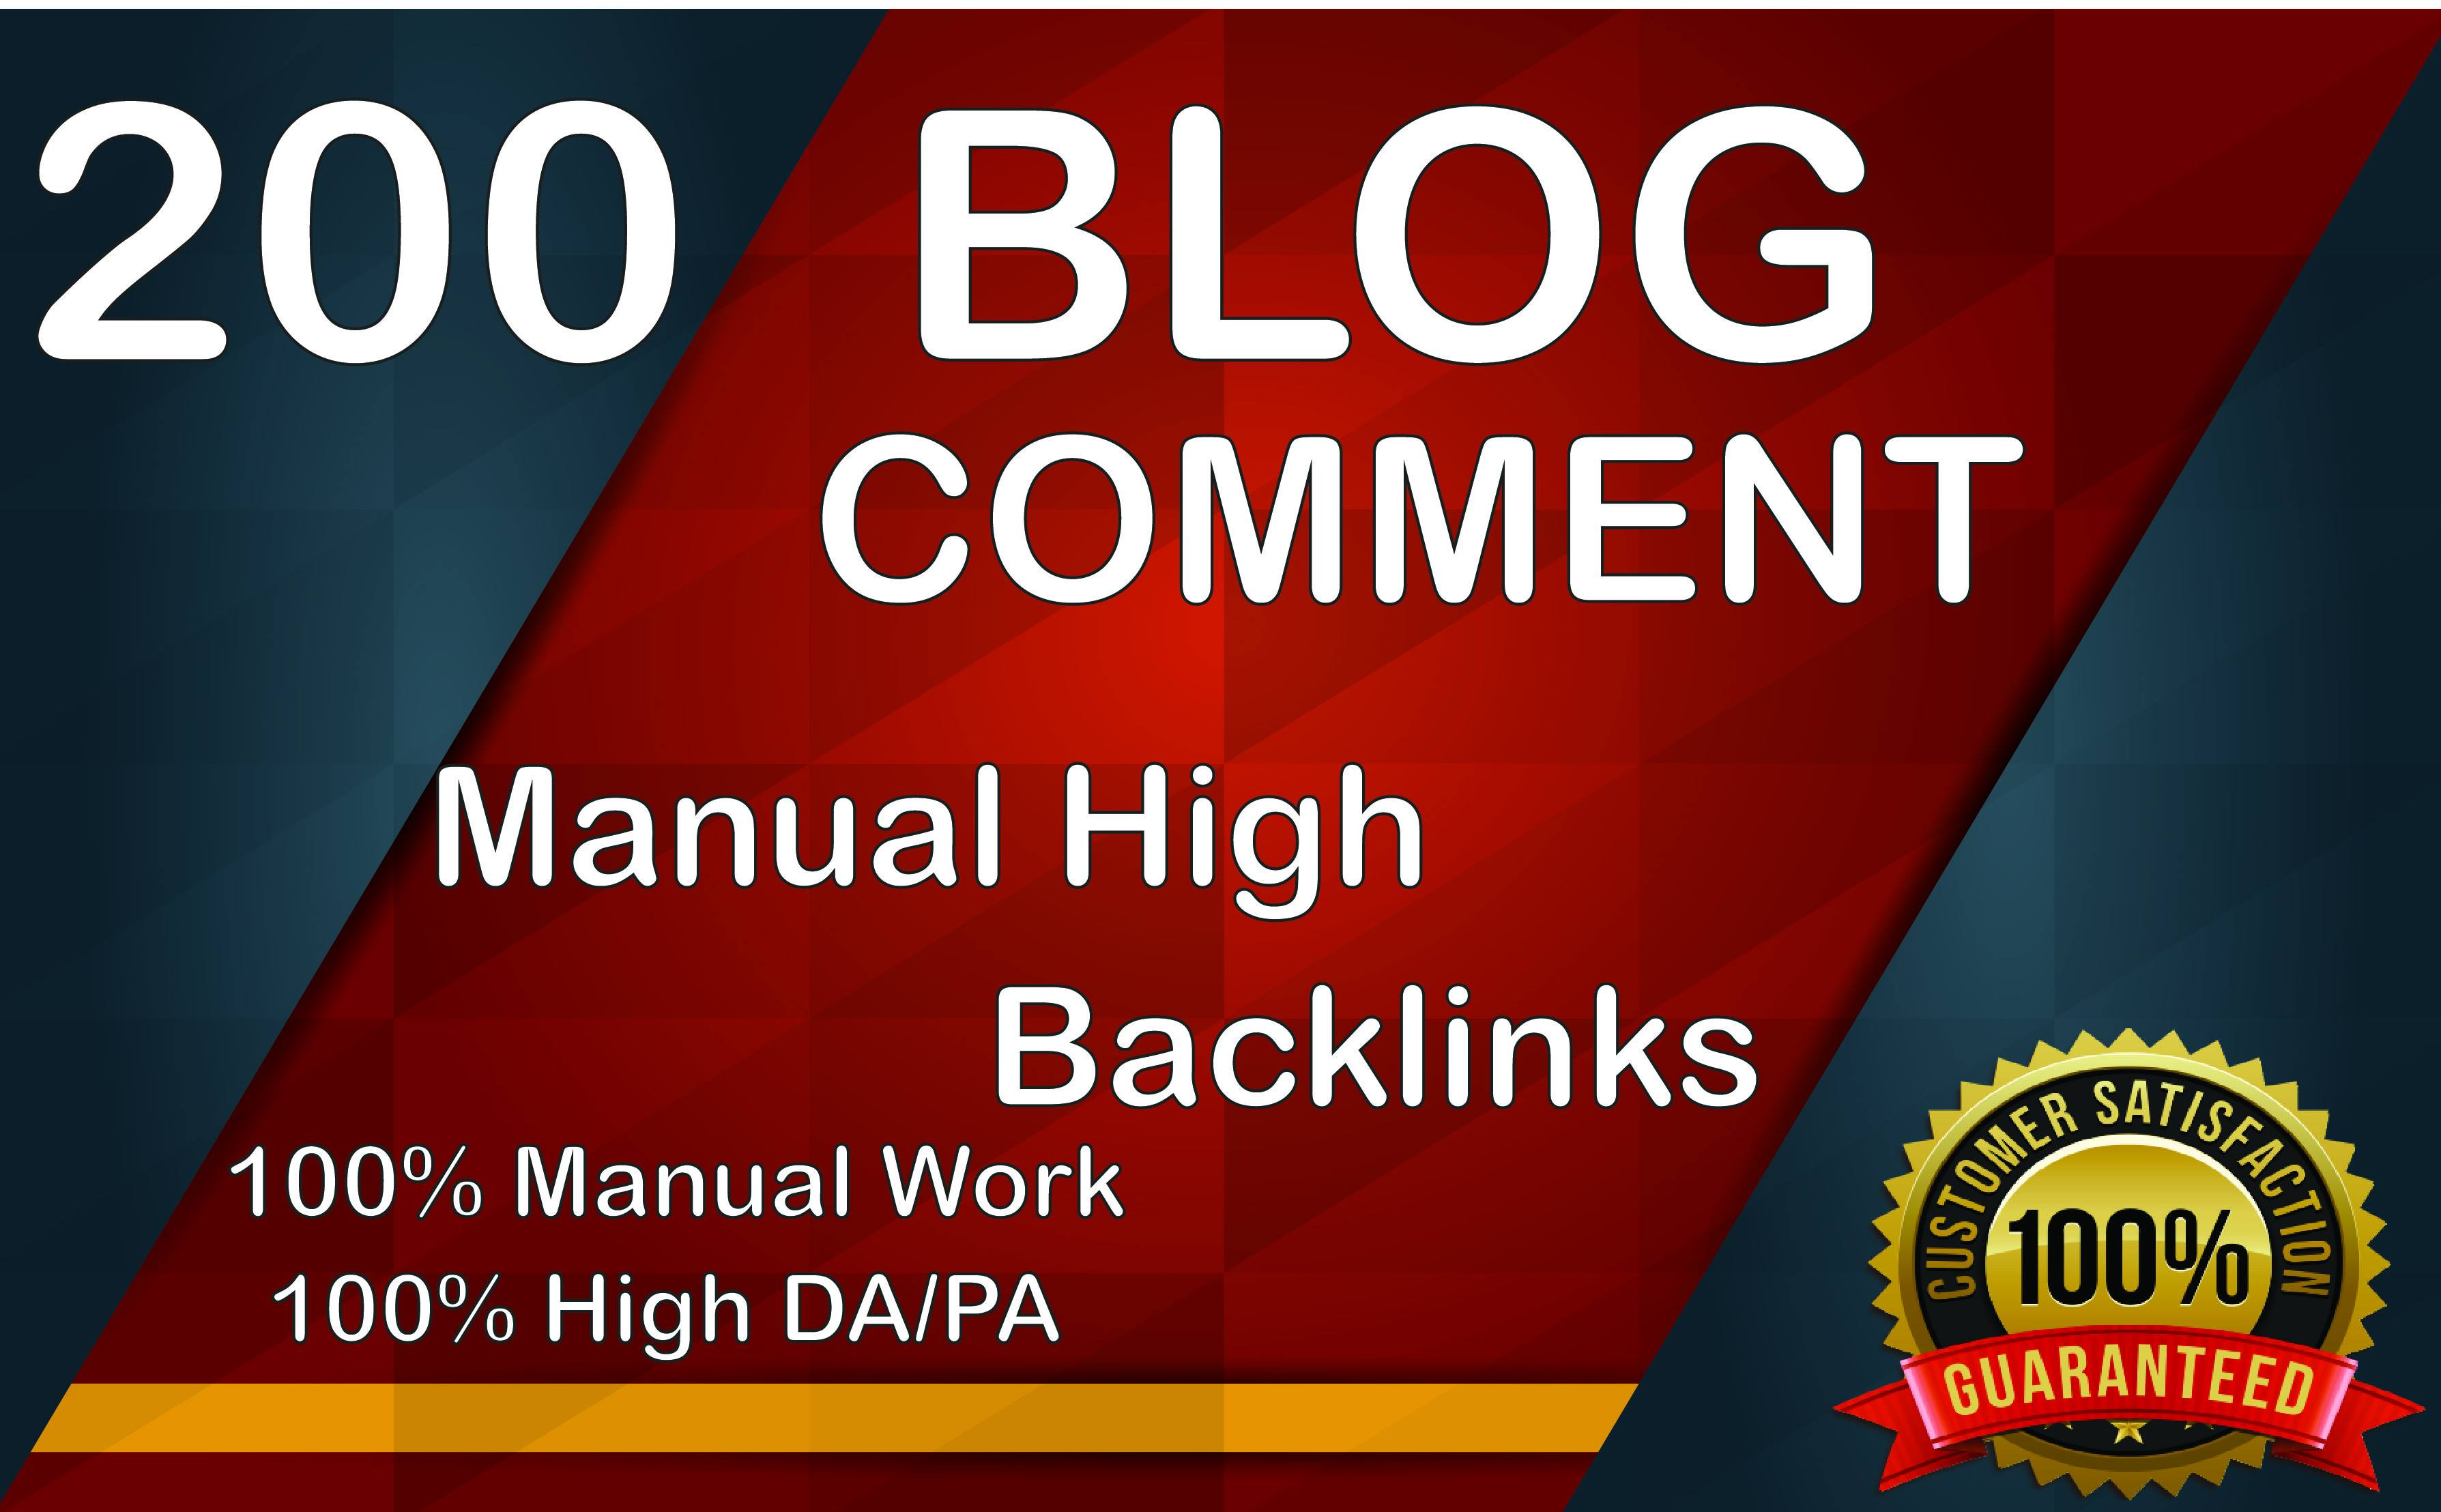 Provide 200 Dofollow Blog Comments Backlinks in high authority